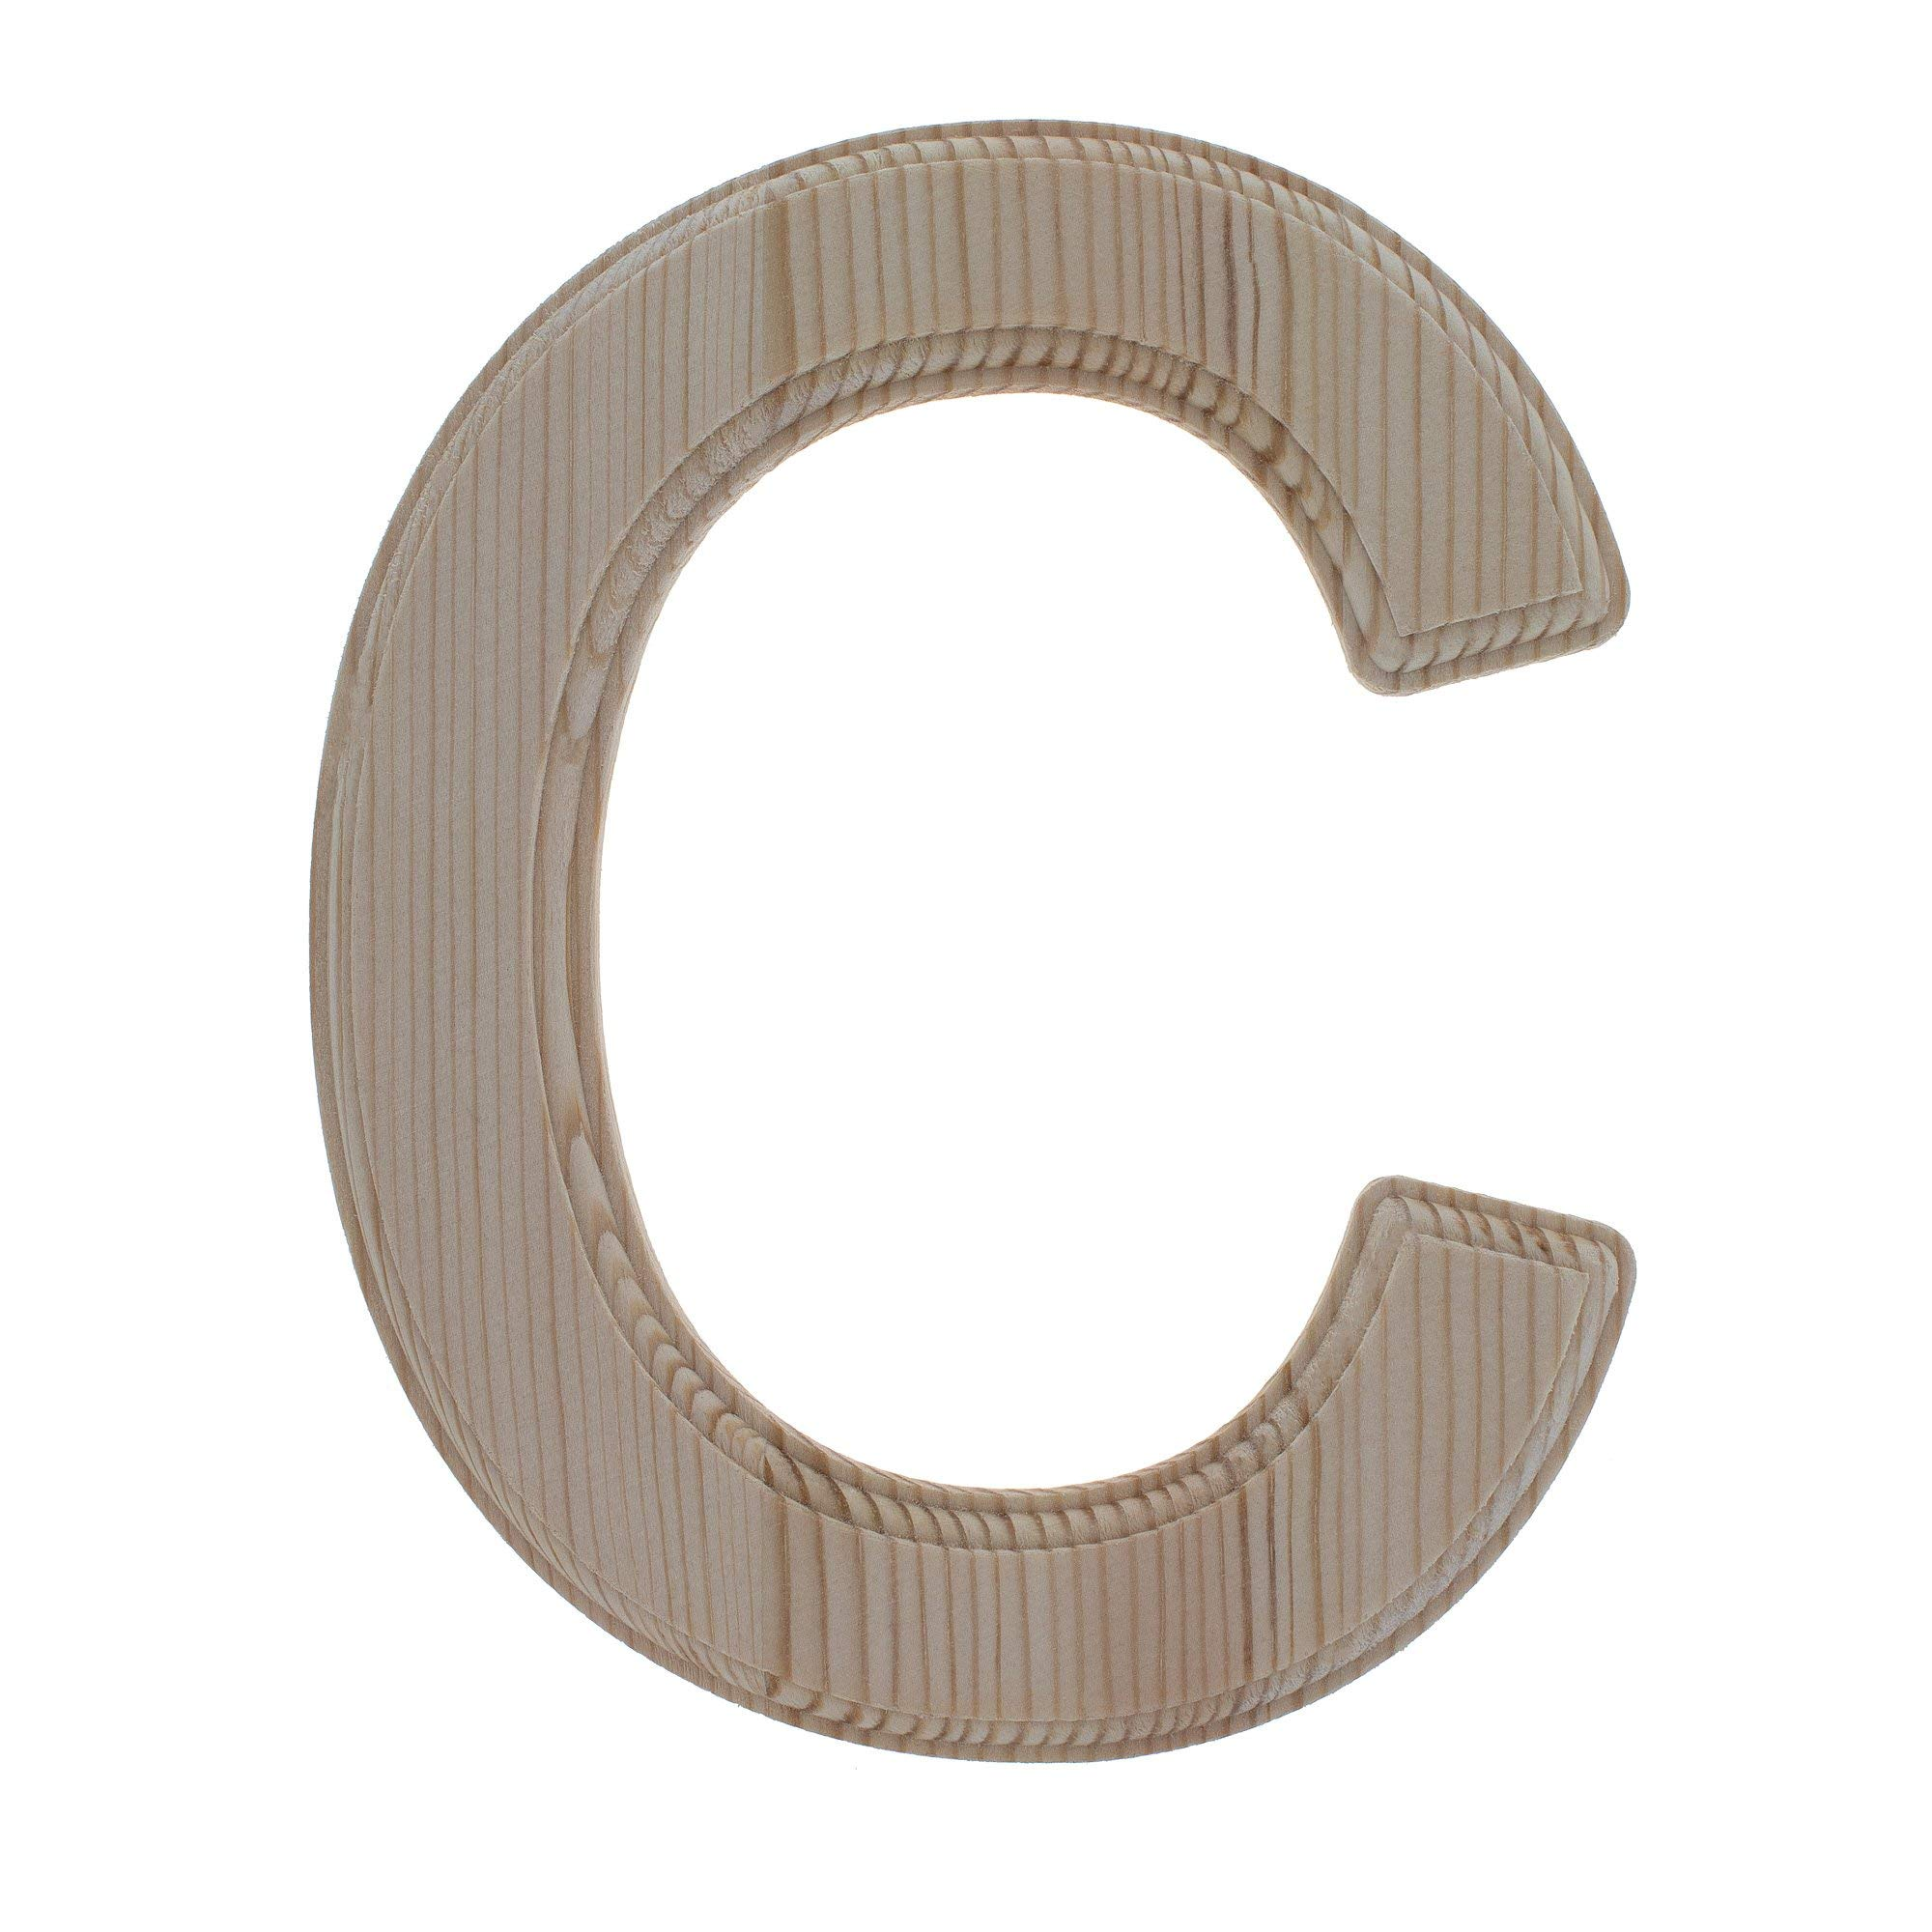 BestPysanky Unfinished Wooden Letter C (6.25 Inches)